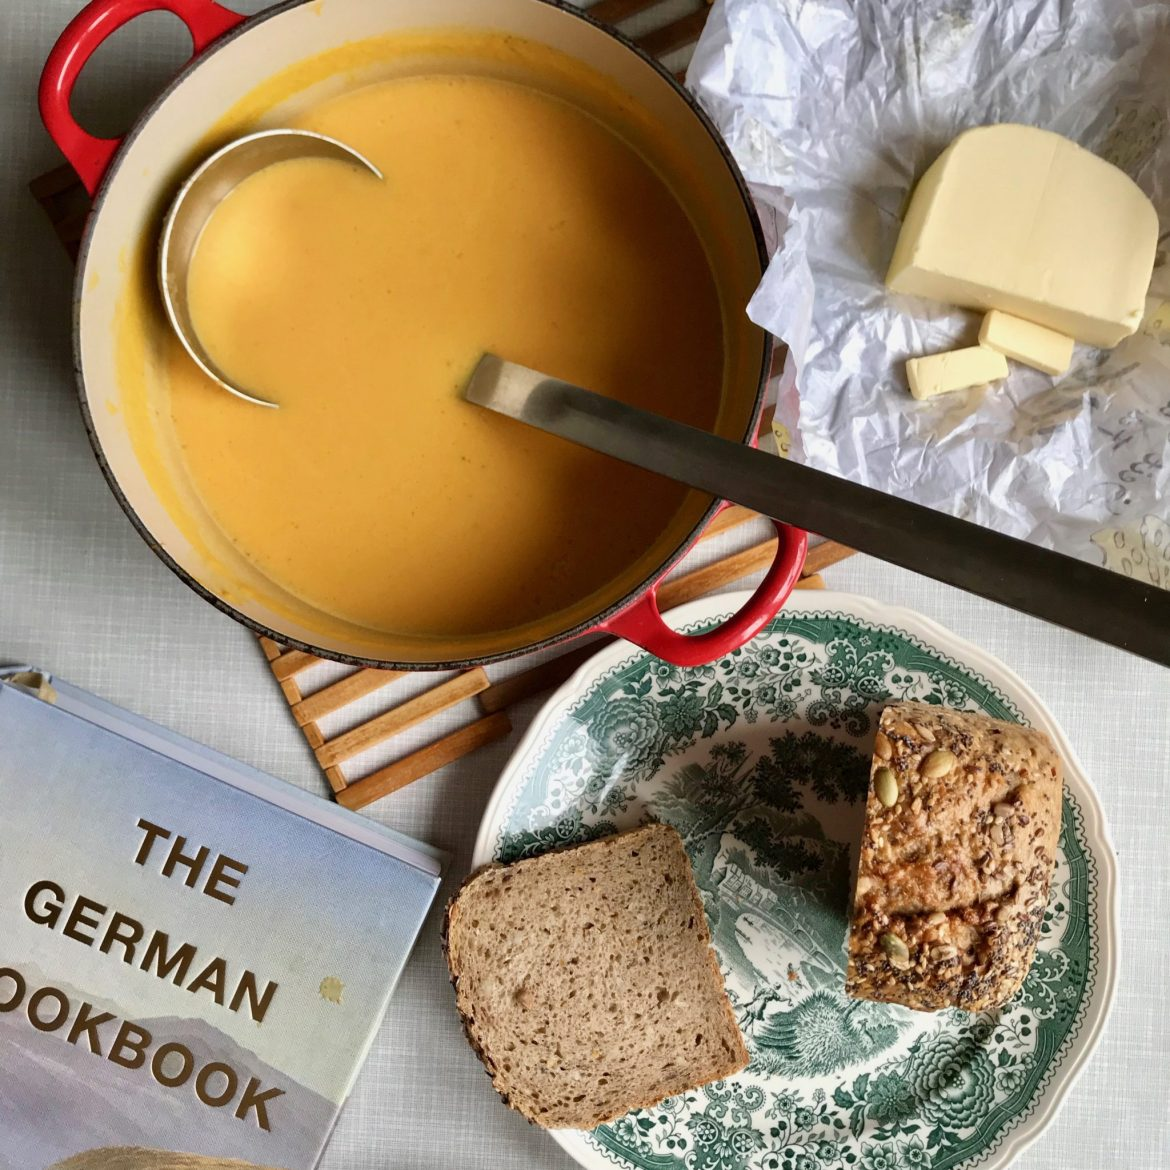 A flatlay of a pan of pumpkin soup, some sliced bread on a green and white plate, a pat of butter and a large cookbook